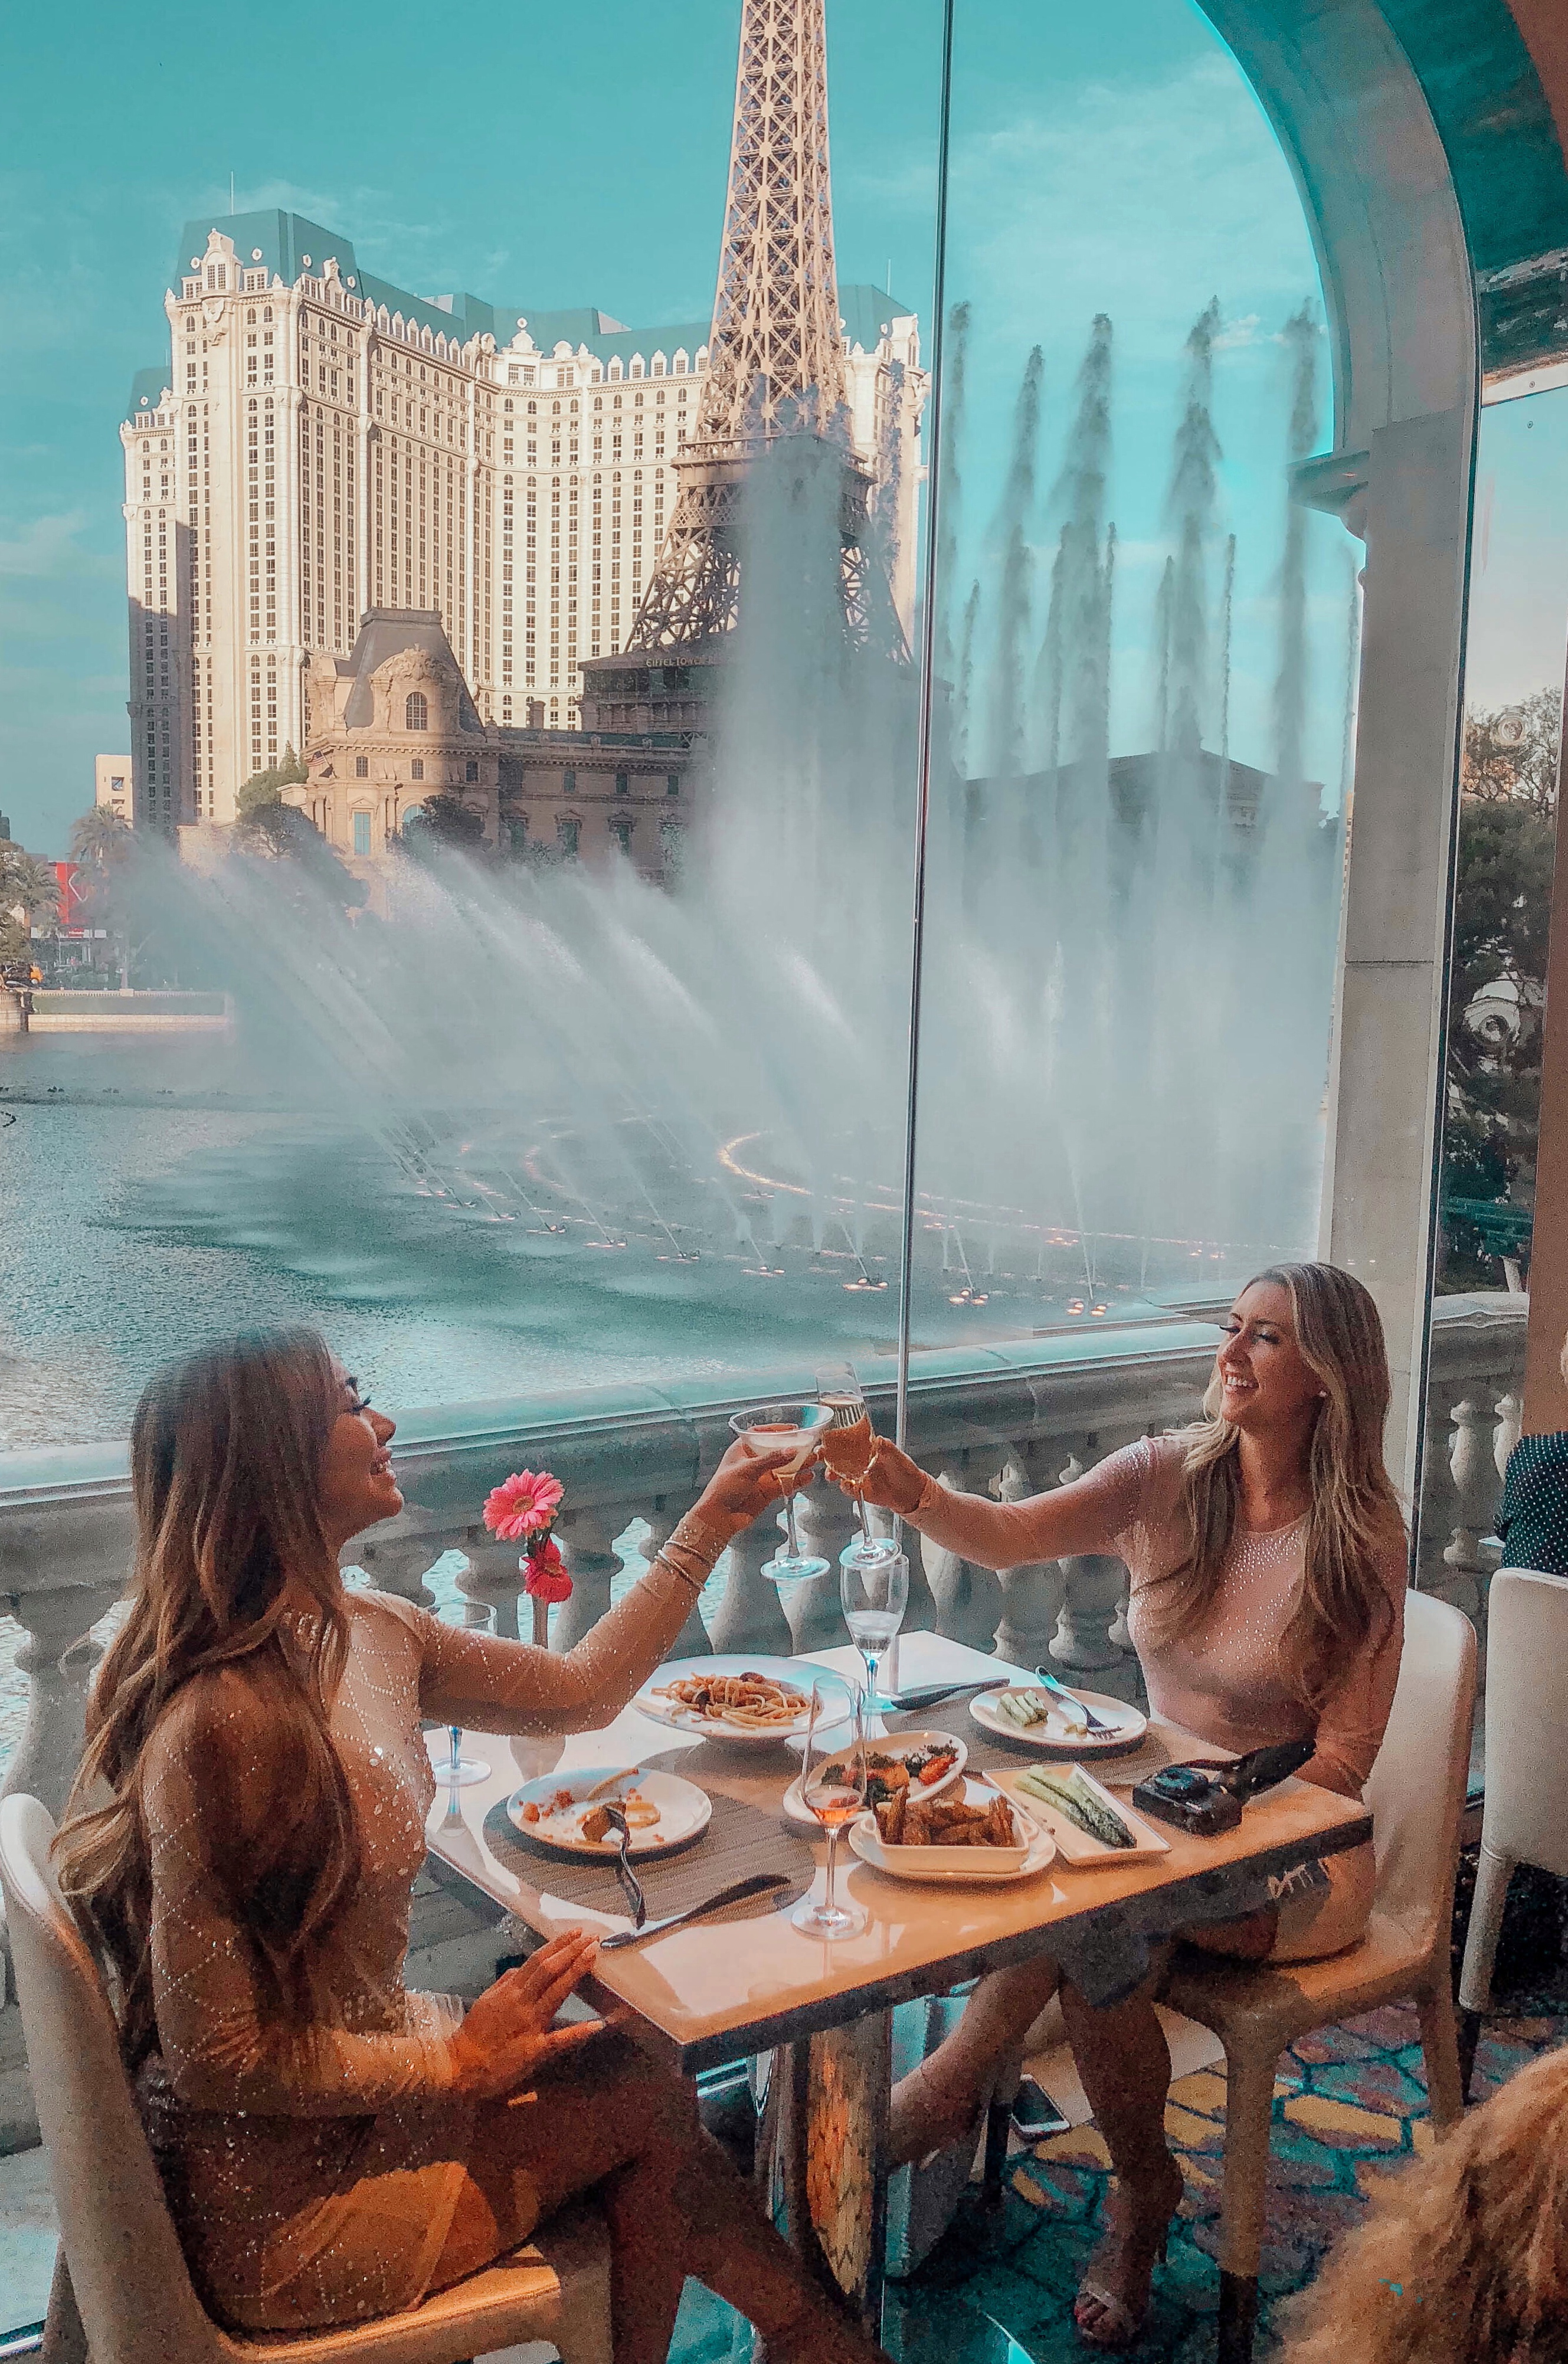 Best Restaurant With a View at Lago in Las Vegas